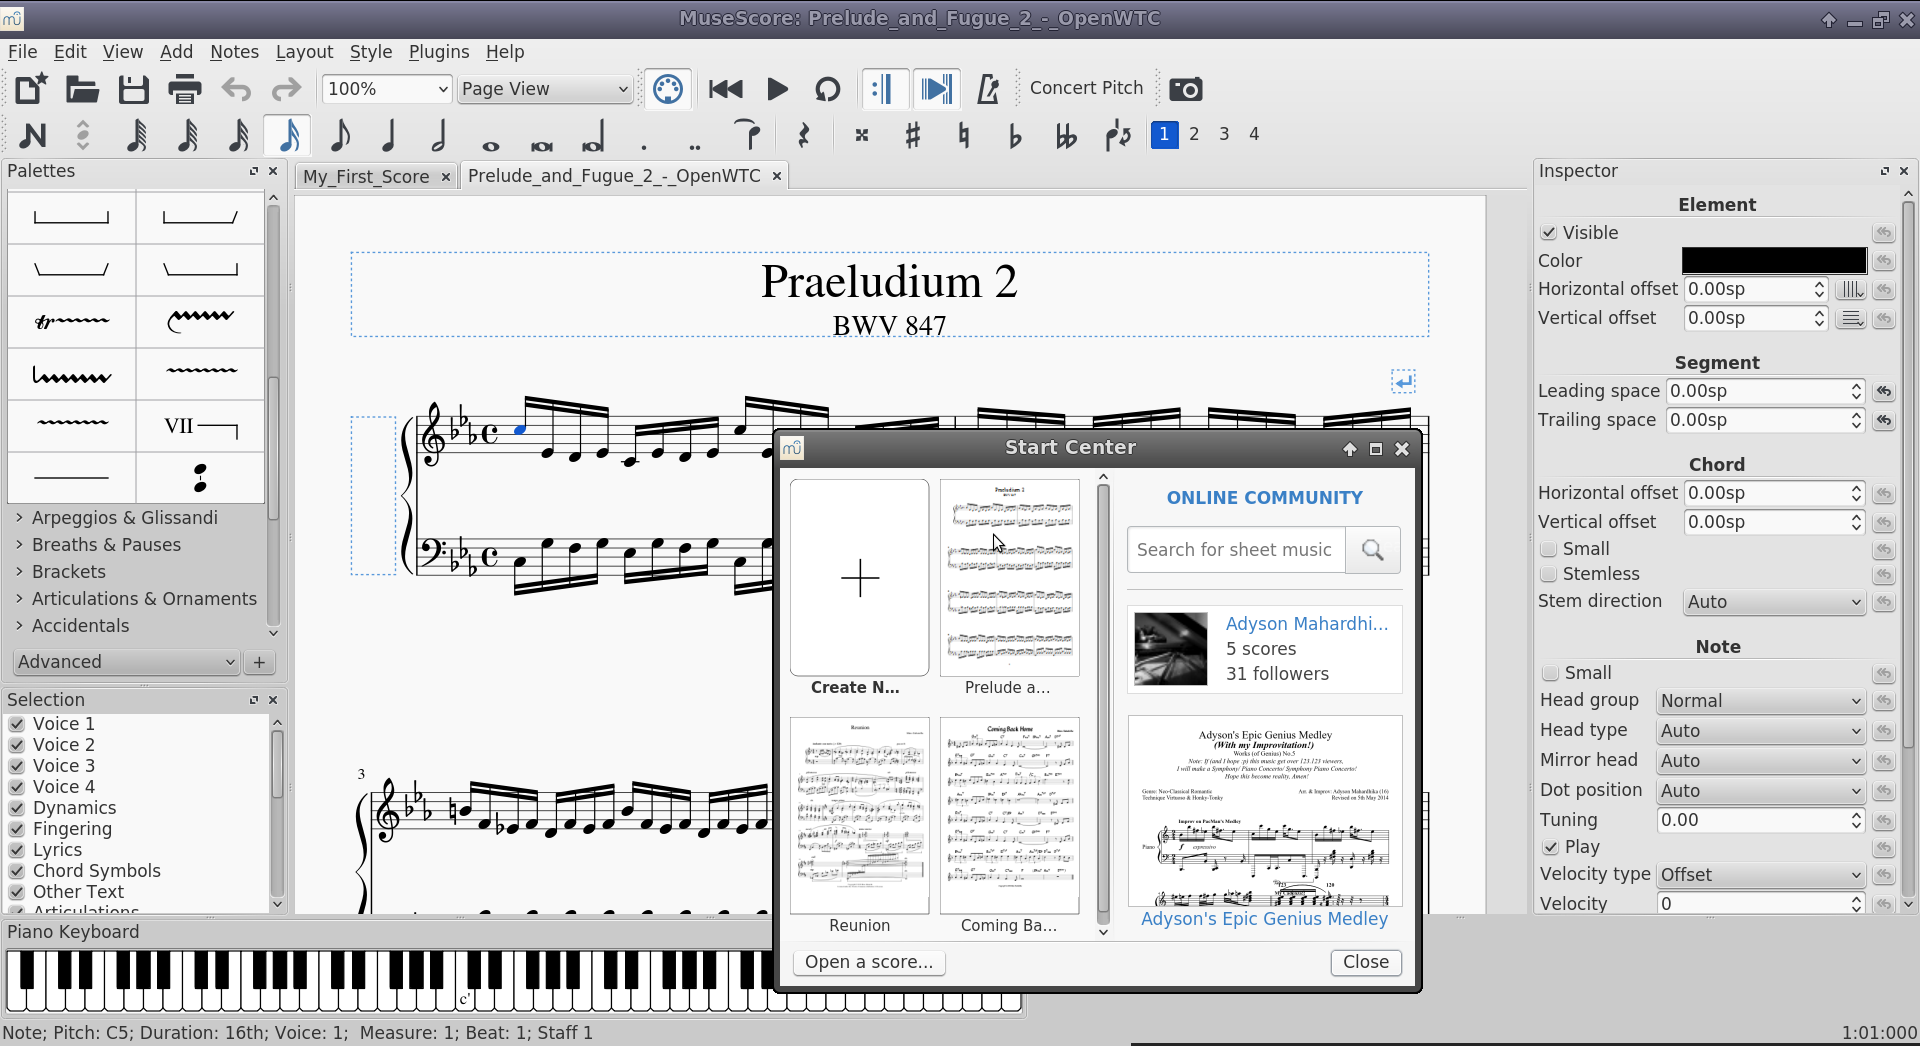 Captura de pantalla do MuseScore 2